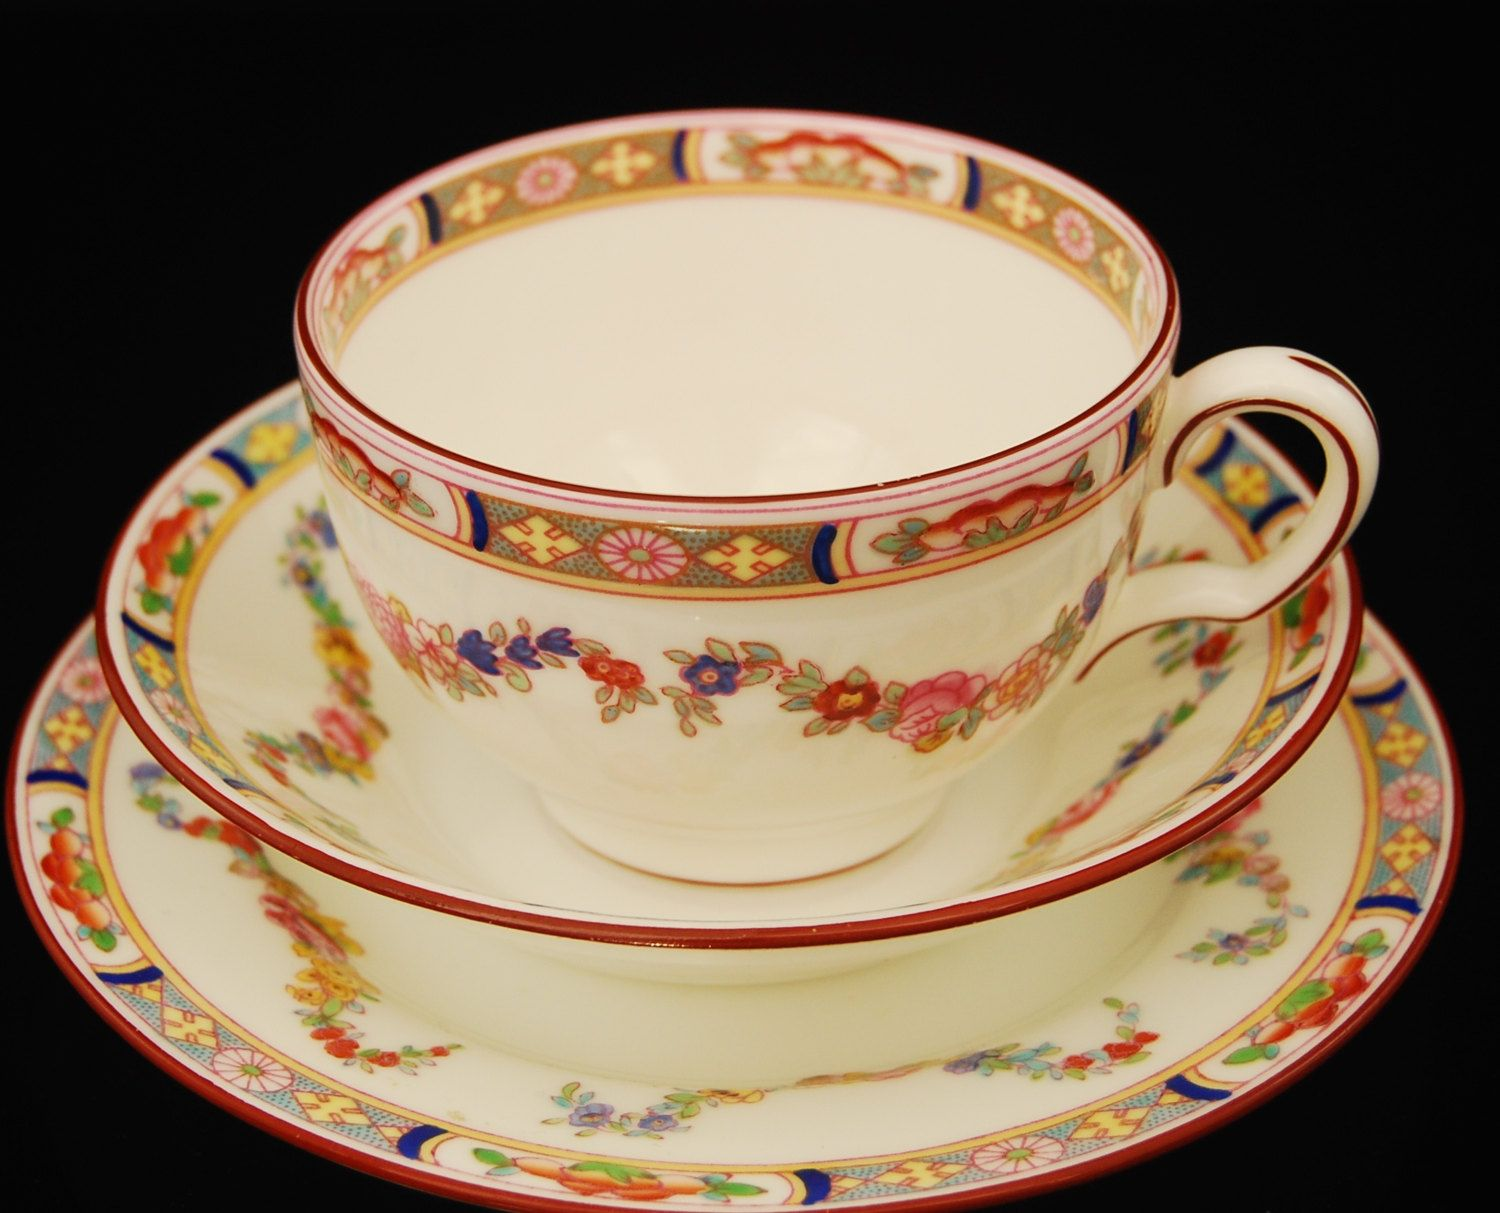 Mintons ROSE Cup & Saucer Floral Wreath by LoveEnglishAntique on Etsy